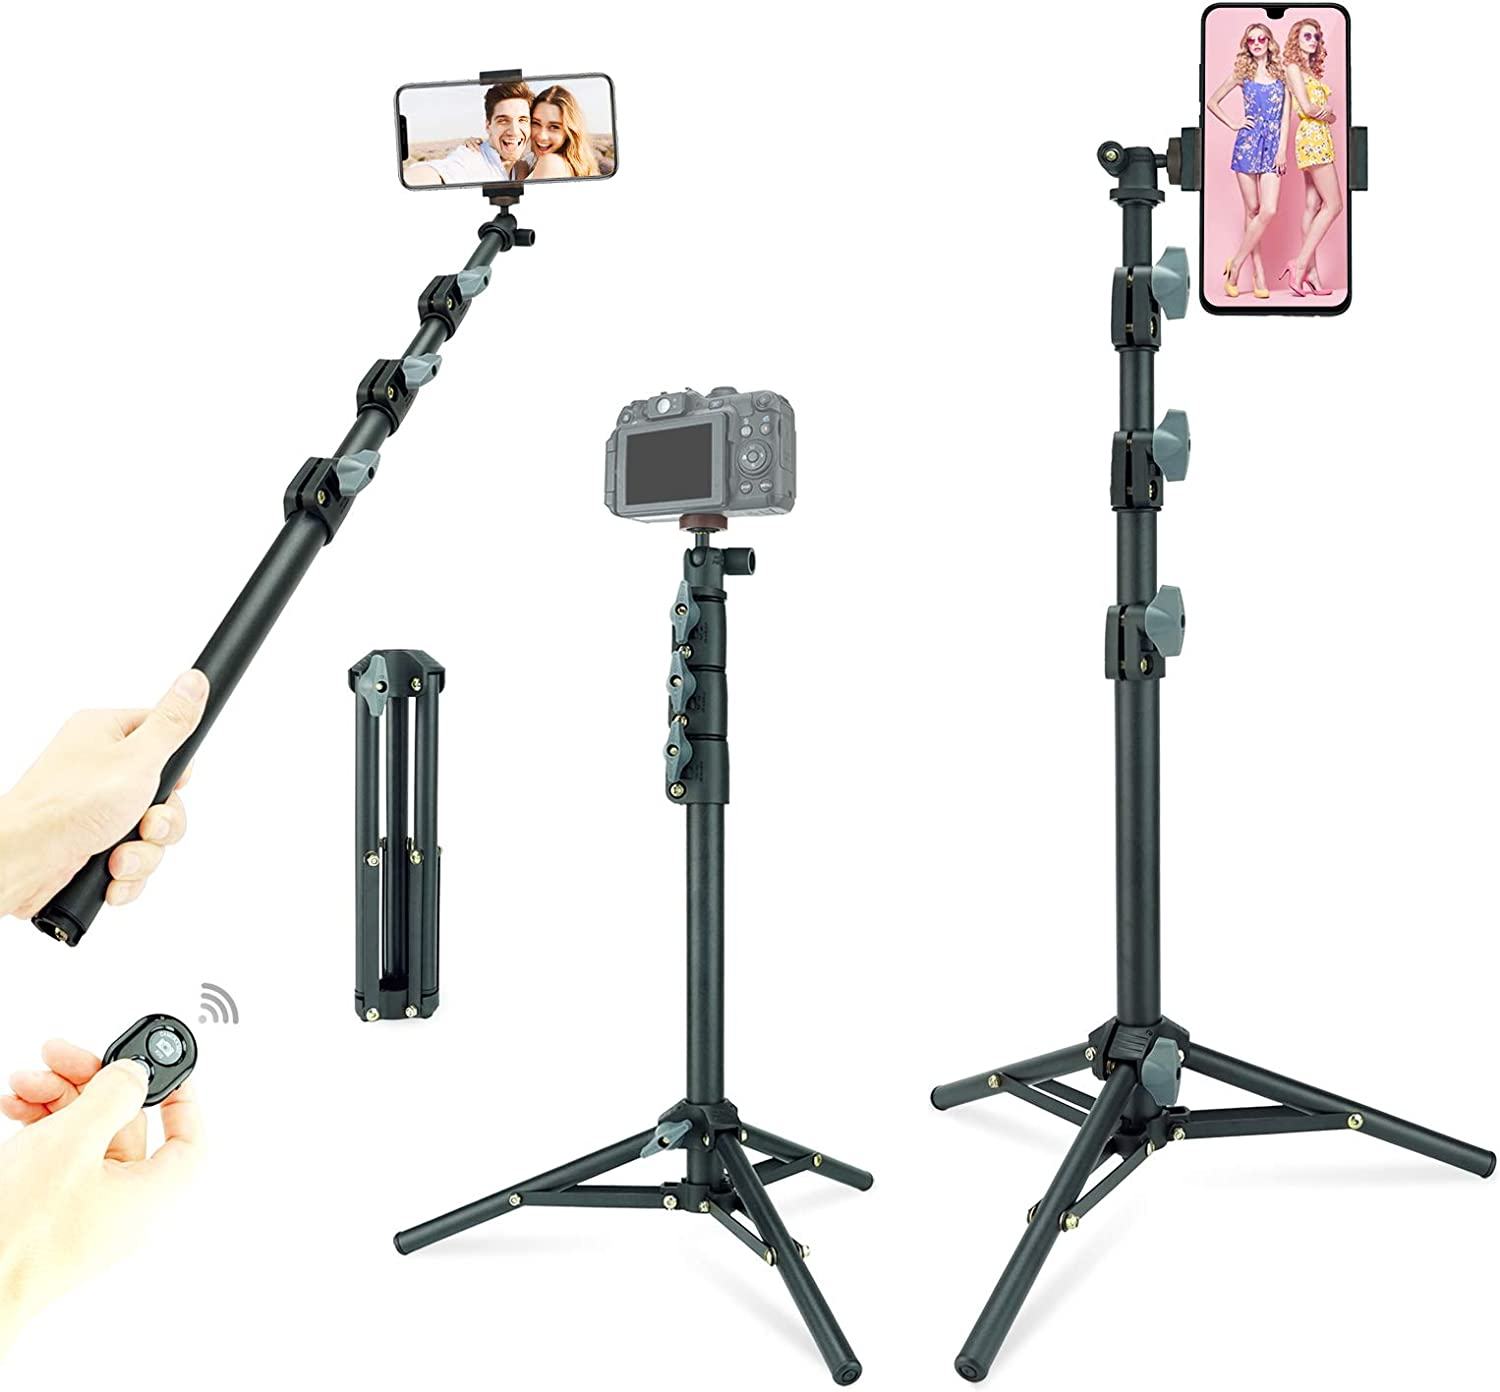 """Selfie Stick & Tripod LINCO, Integrated, Portable All-in-One Professional, Heavy Duty, Lightweight, Bluetooth Remote for Apple & Android Devices, Separable Tripod Feet, Extends to 52"""", Black"""